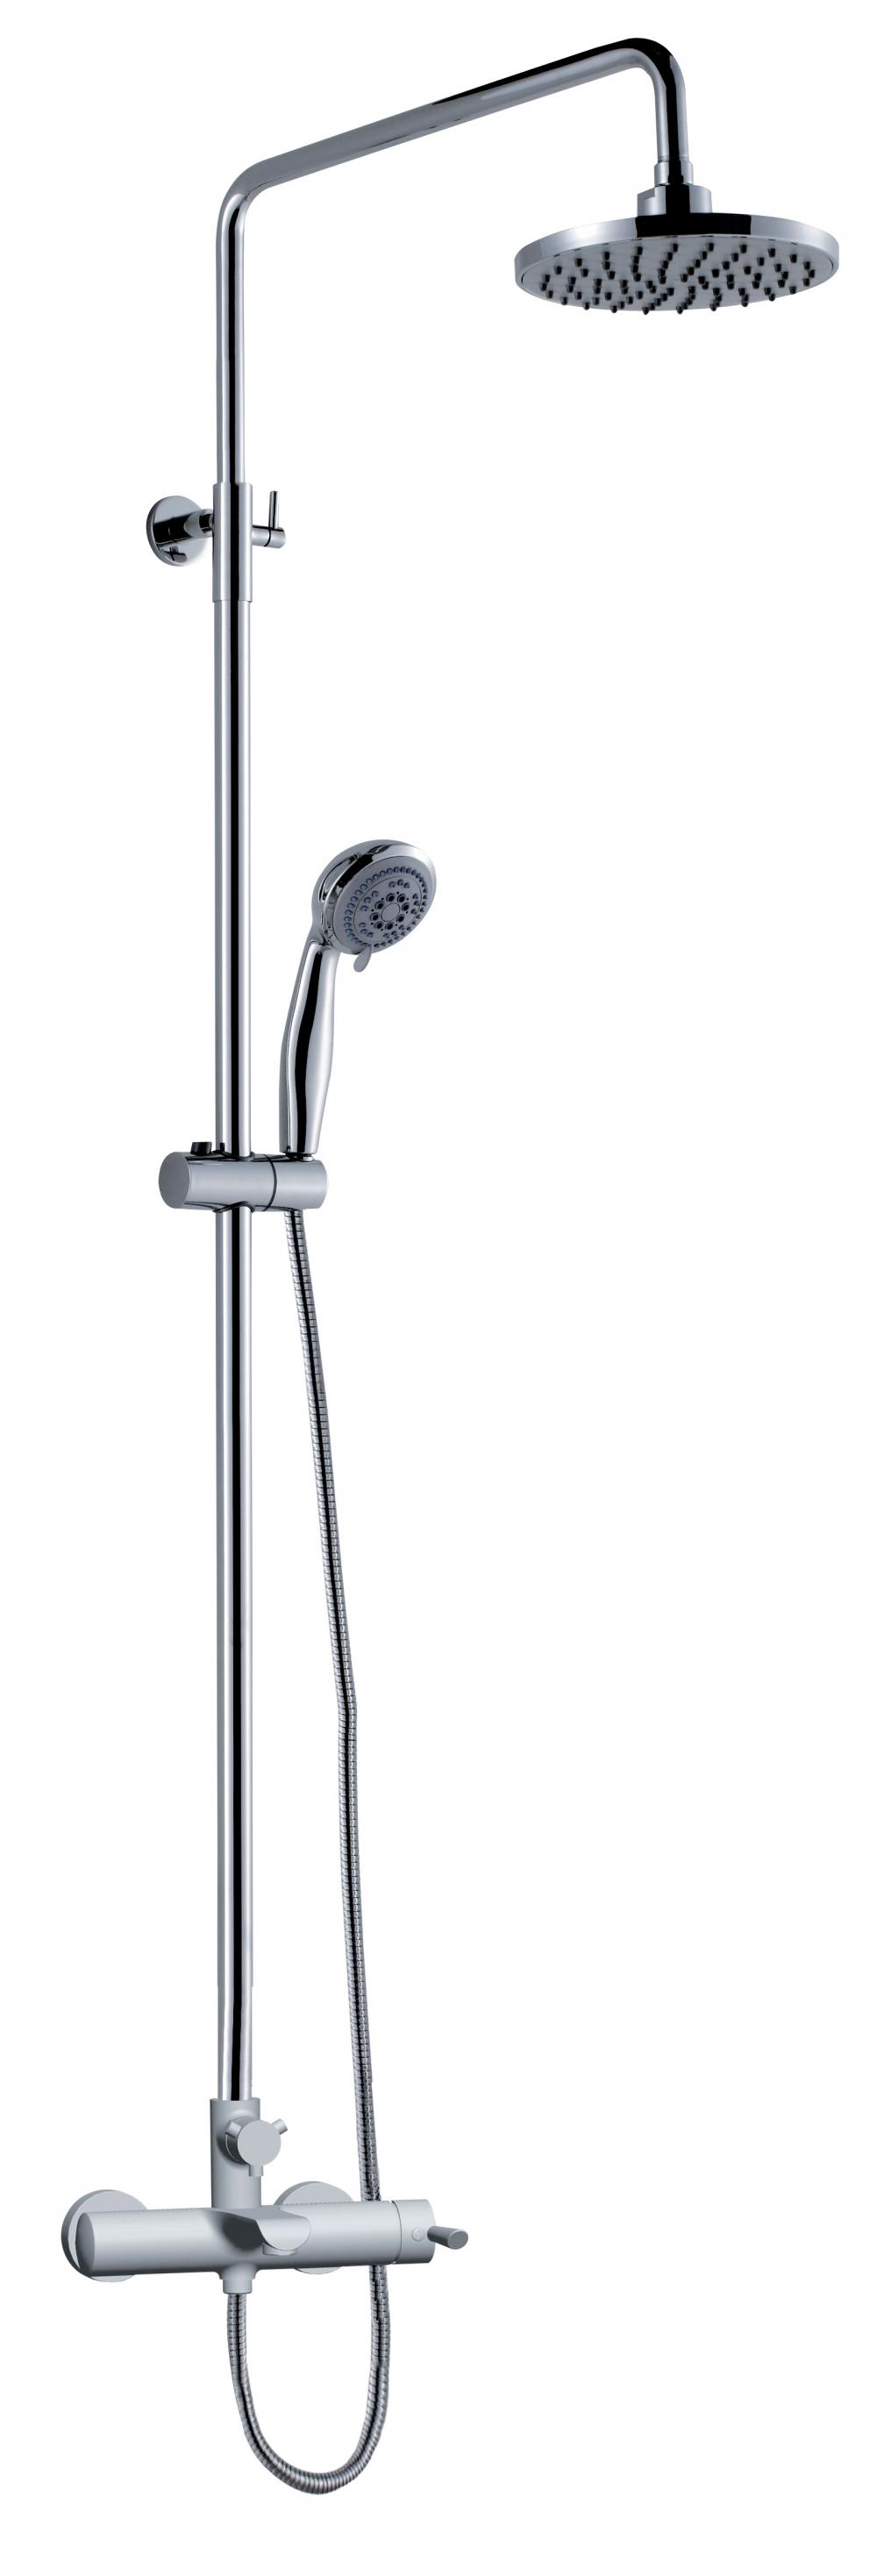 Single Handle Wall Mounted Shower Faucet